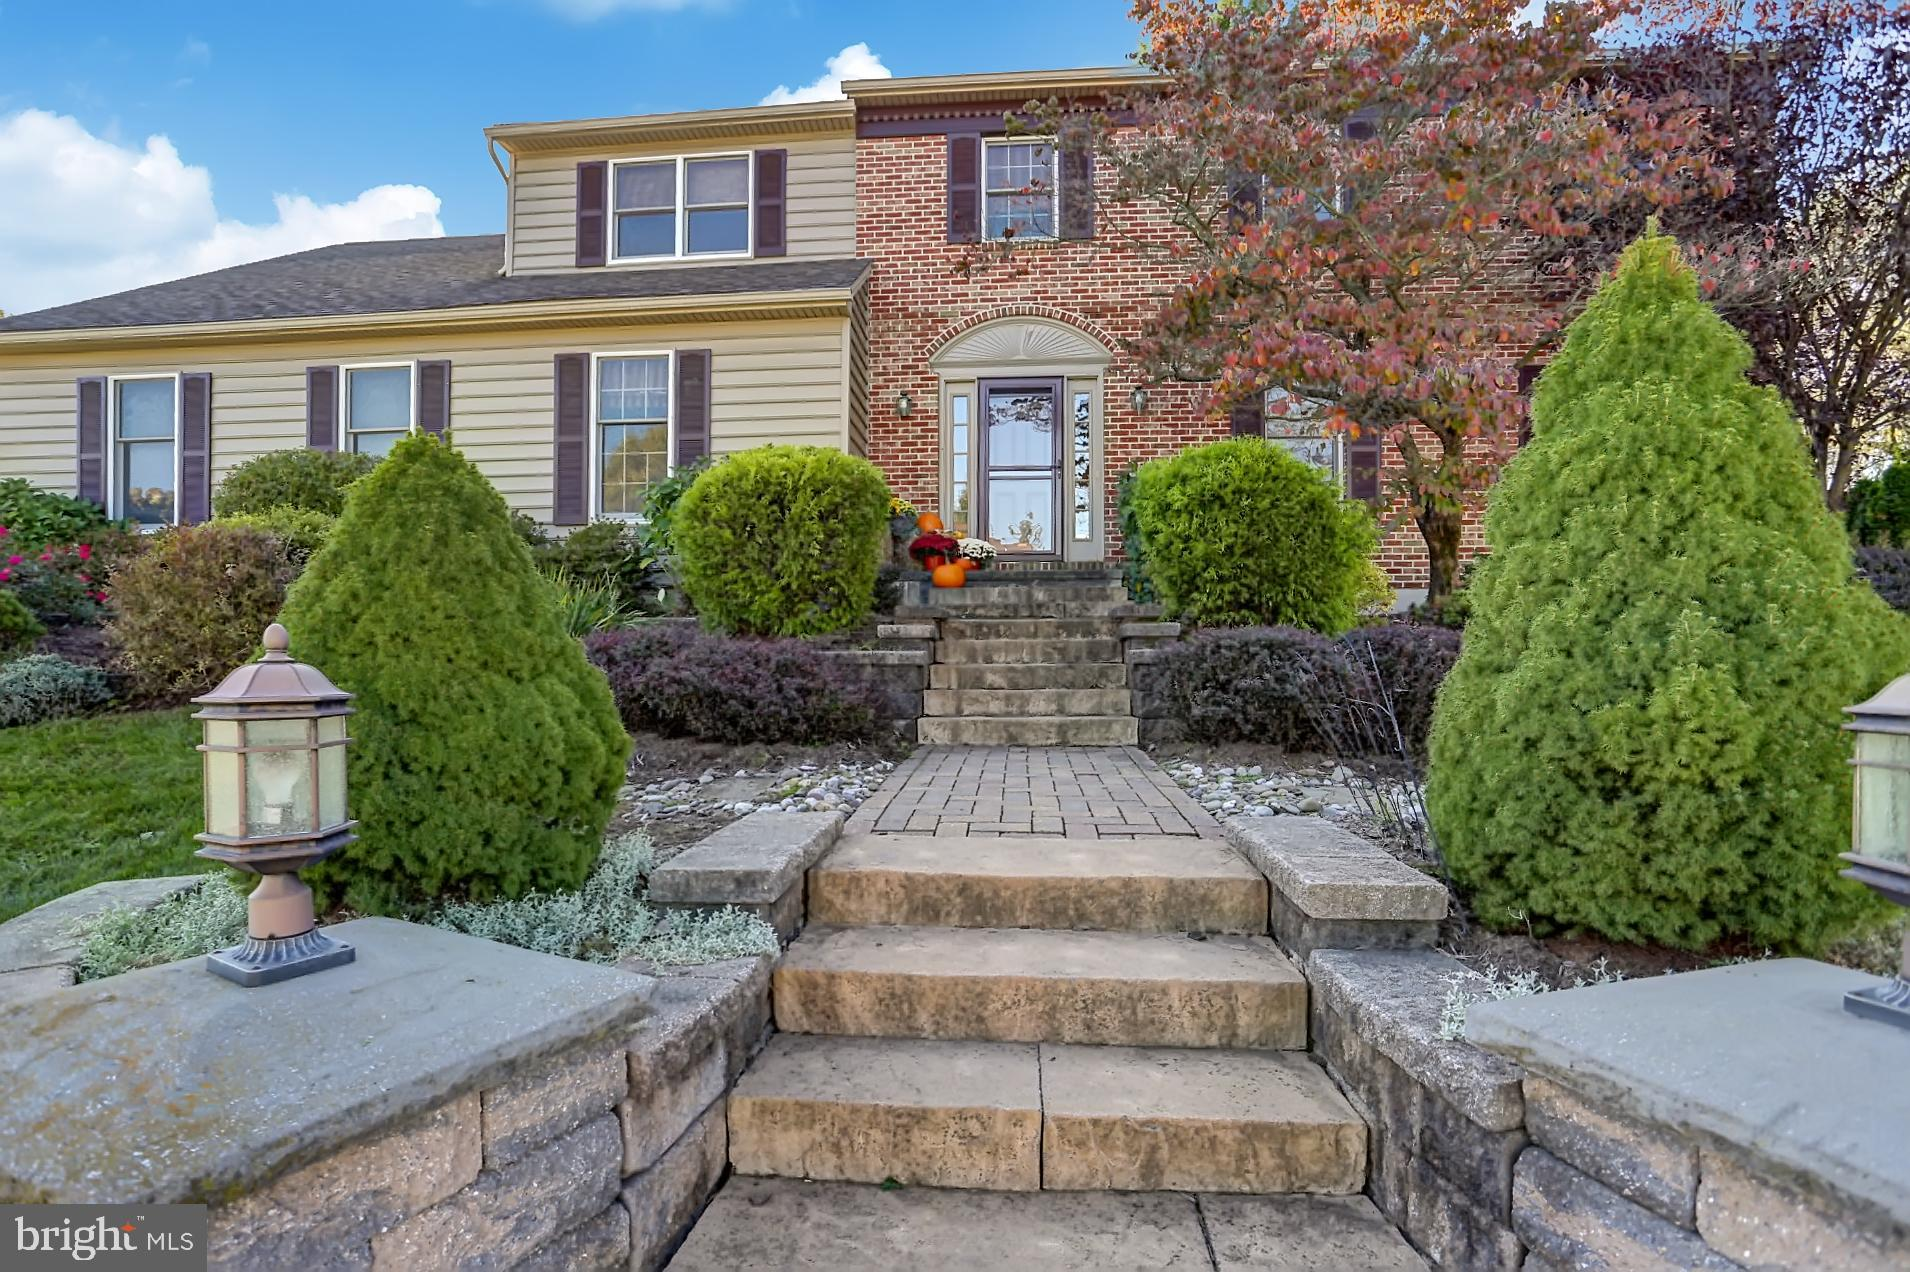 2020 GRING DRIVE, READING, PA 19610